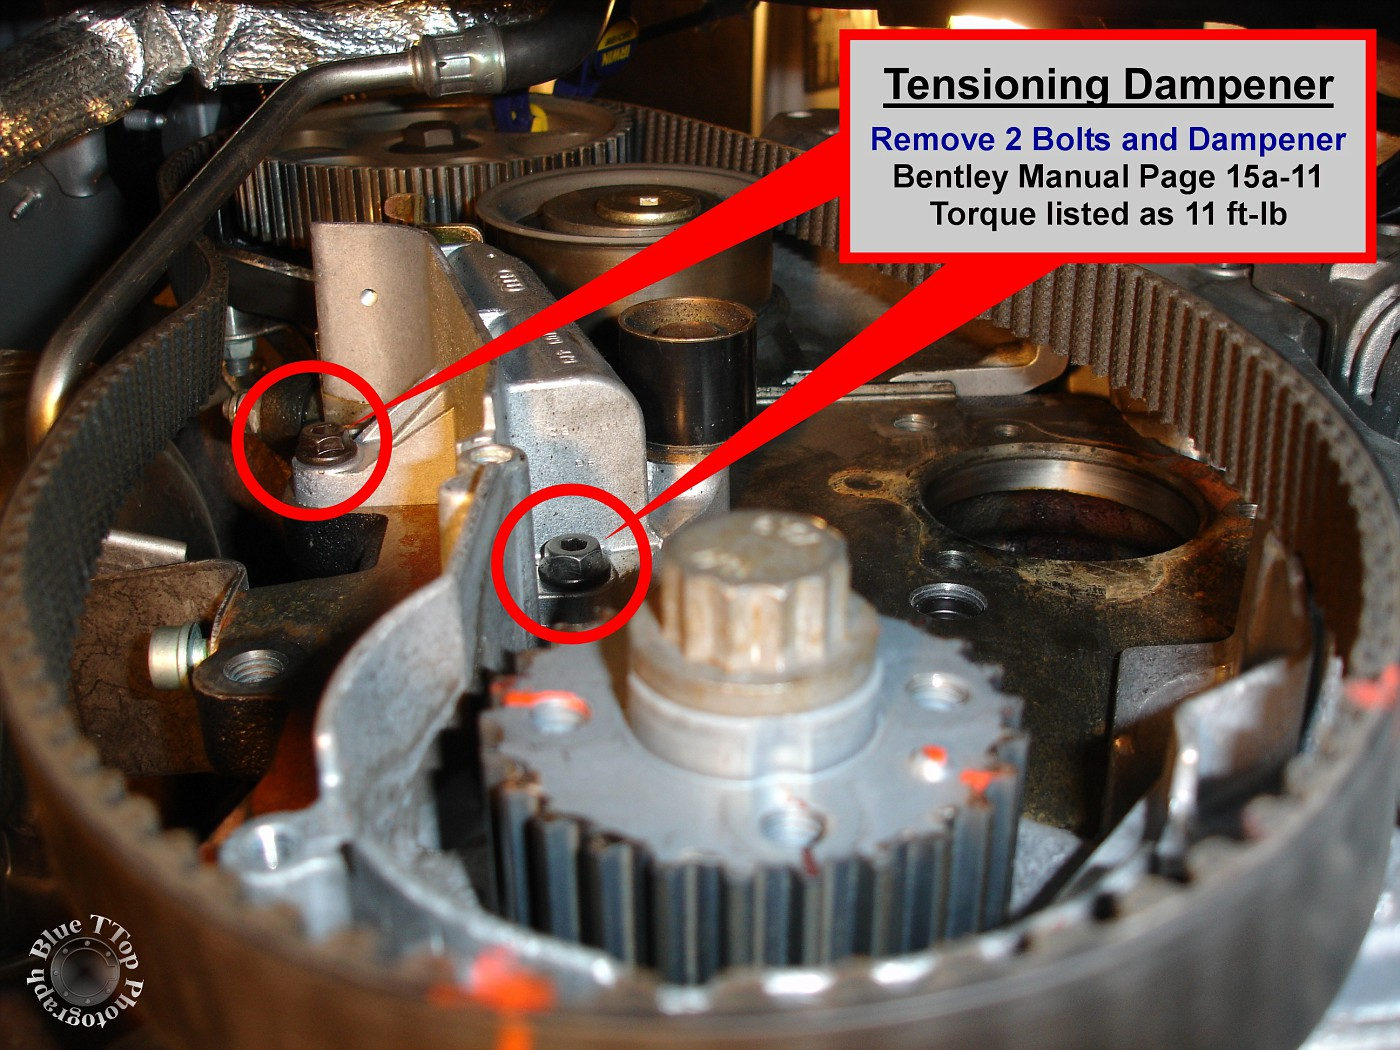 Step 21: Remove Tensioning Dampener. Remove the 2 bolts (10mm) and  Tensioning Dampener. Bentley Manual page 15a-11.